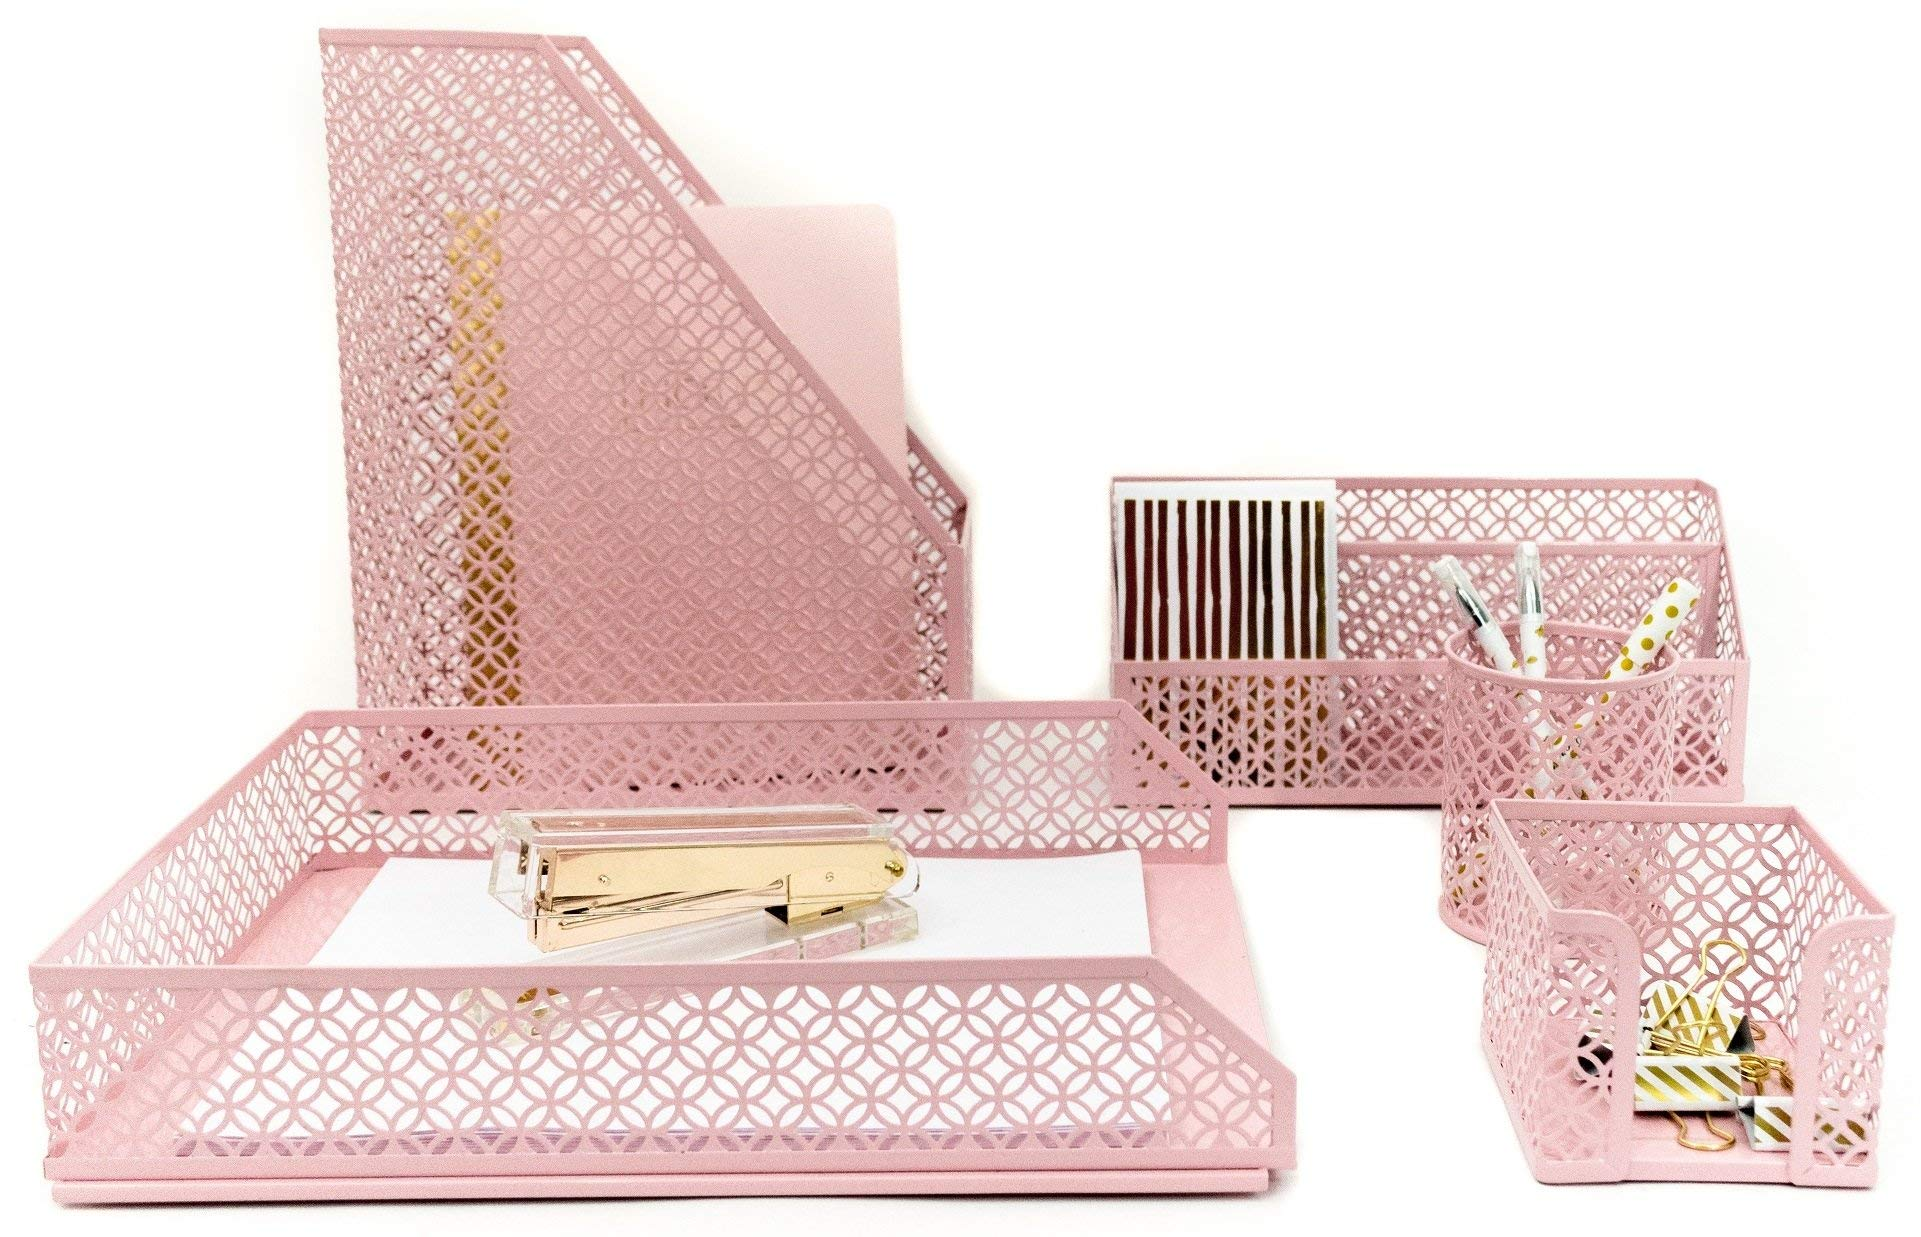 Blu Monaco Office Supplies Pink Desk Accessories for Women-5 Piece Desk Organizer Set-Mail Sorter, Sticky Note Holder, Pen Cup, Magazine Holder, Letter Tray-Pink Room Decor for Women and Teen Girls by Blu Monaco